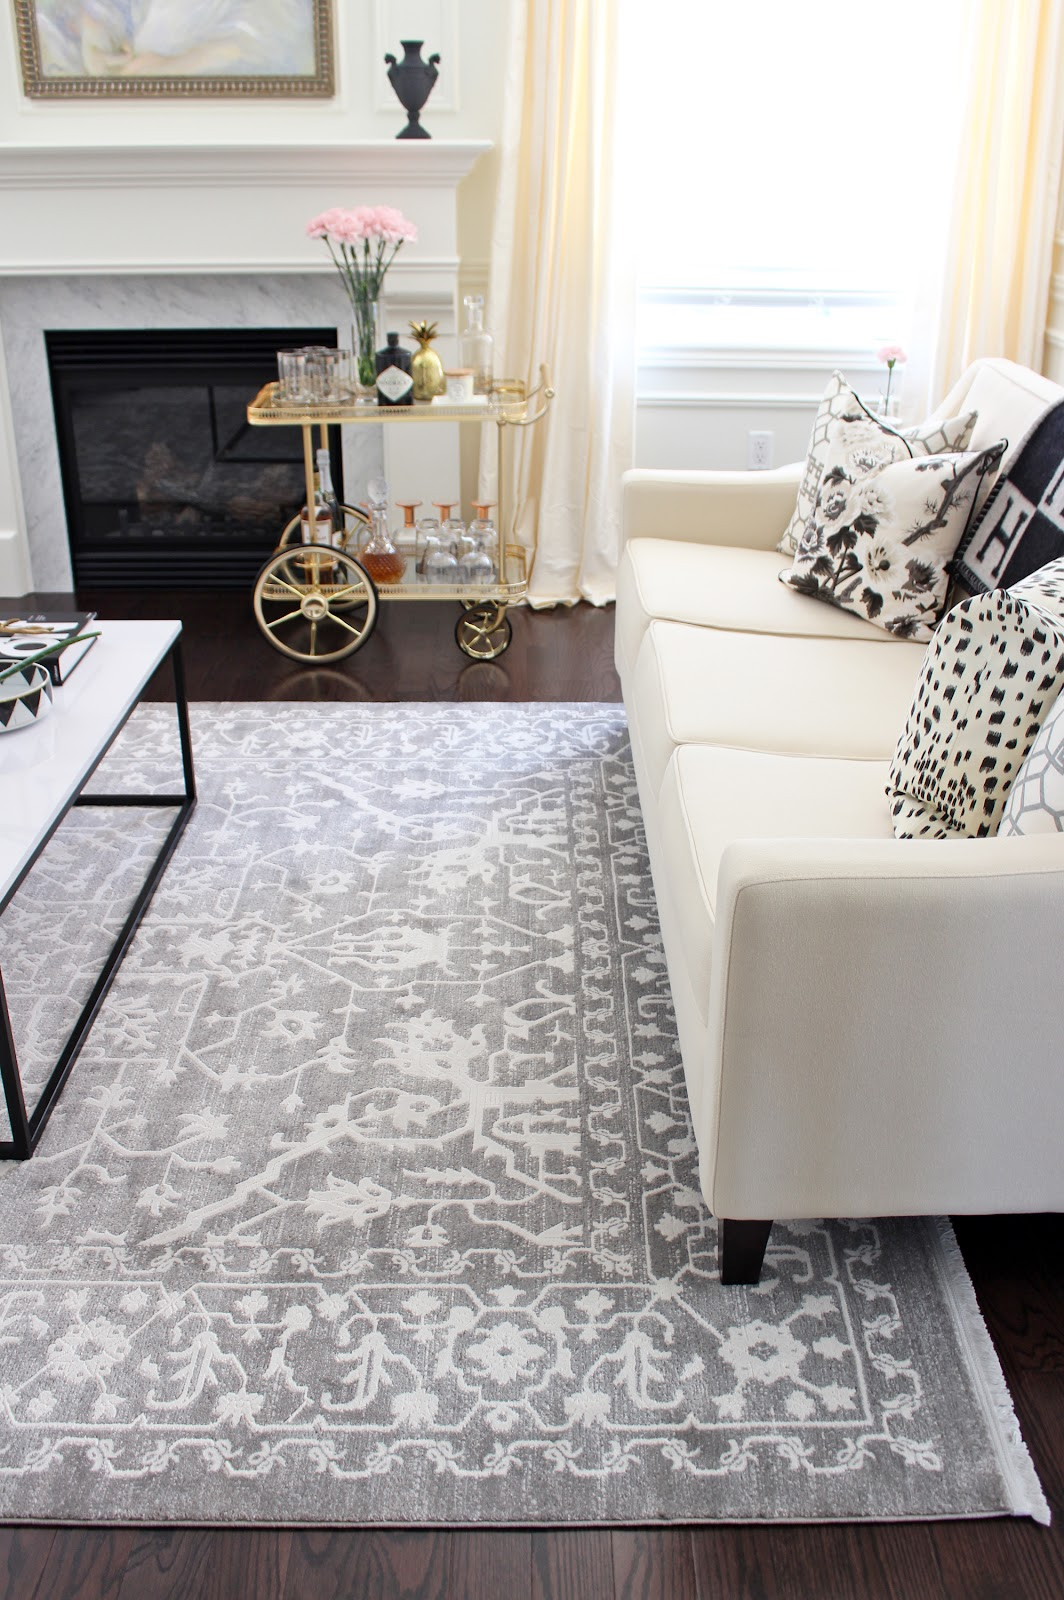 Am dolce vita living room new rug - Living room area rugs ...